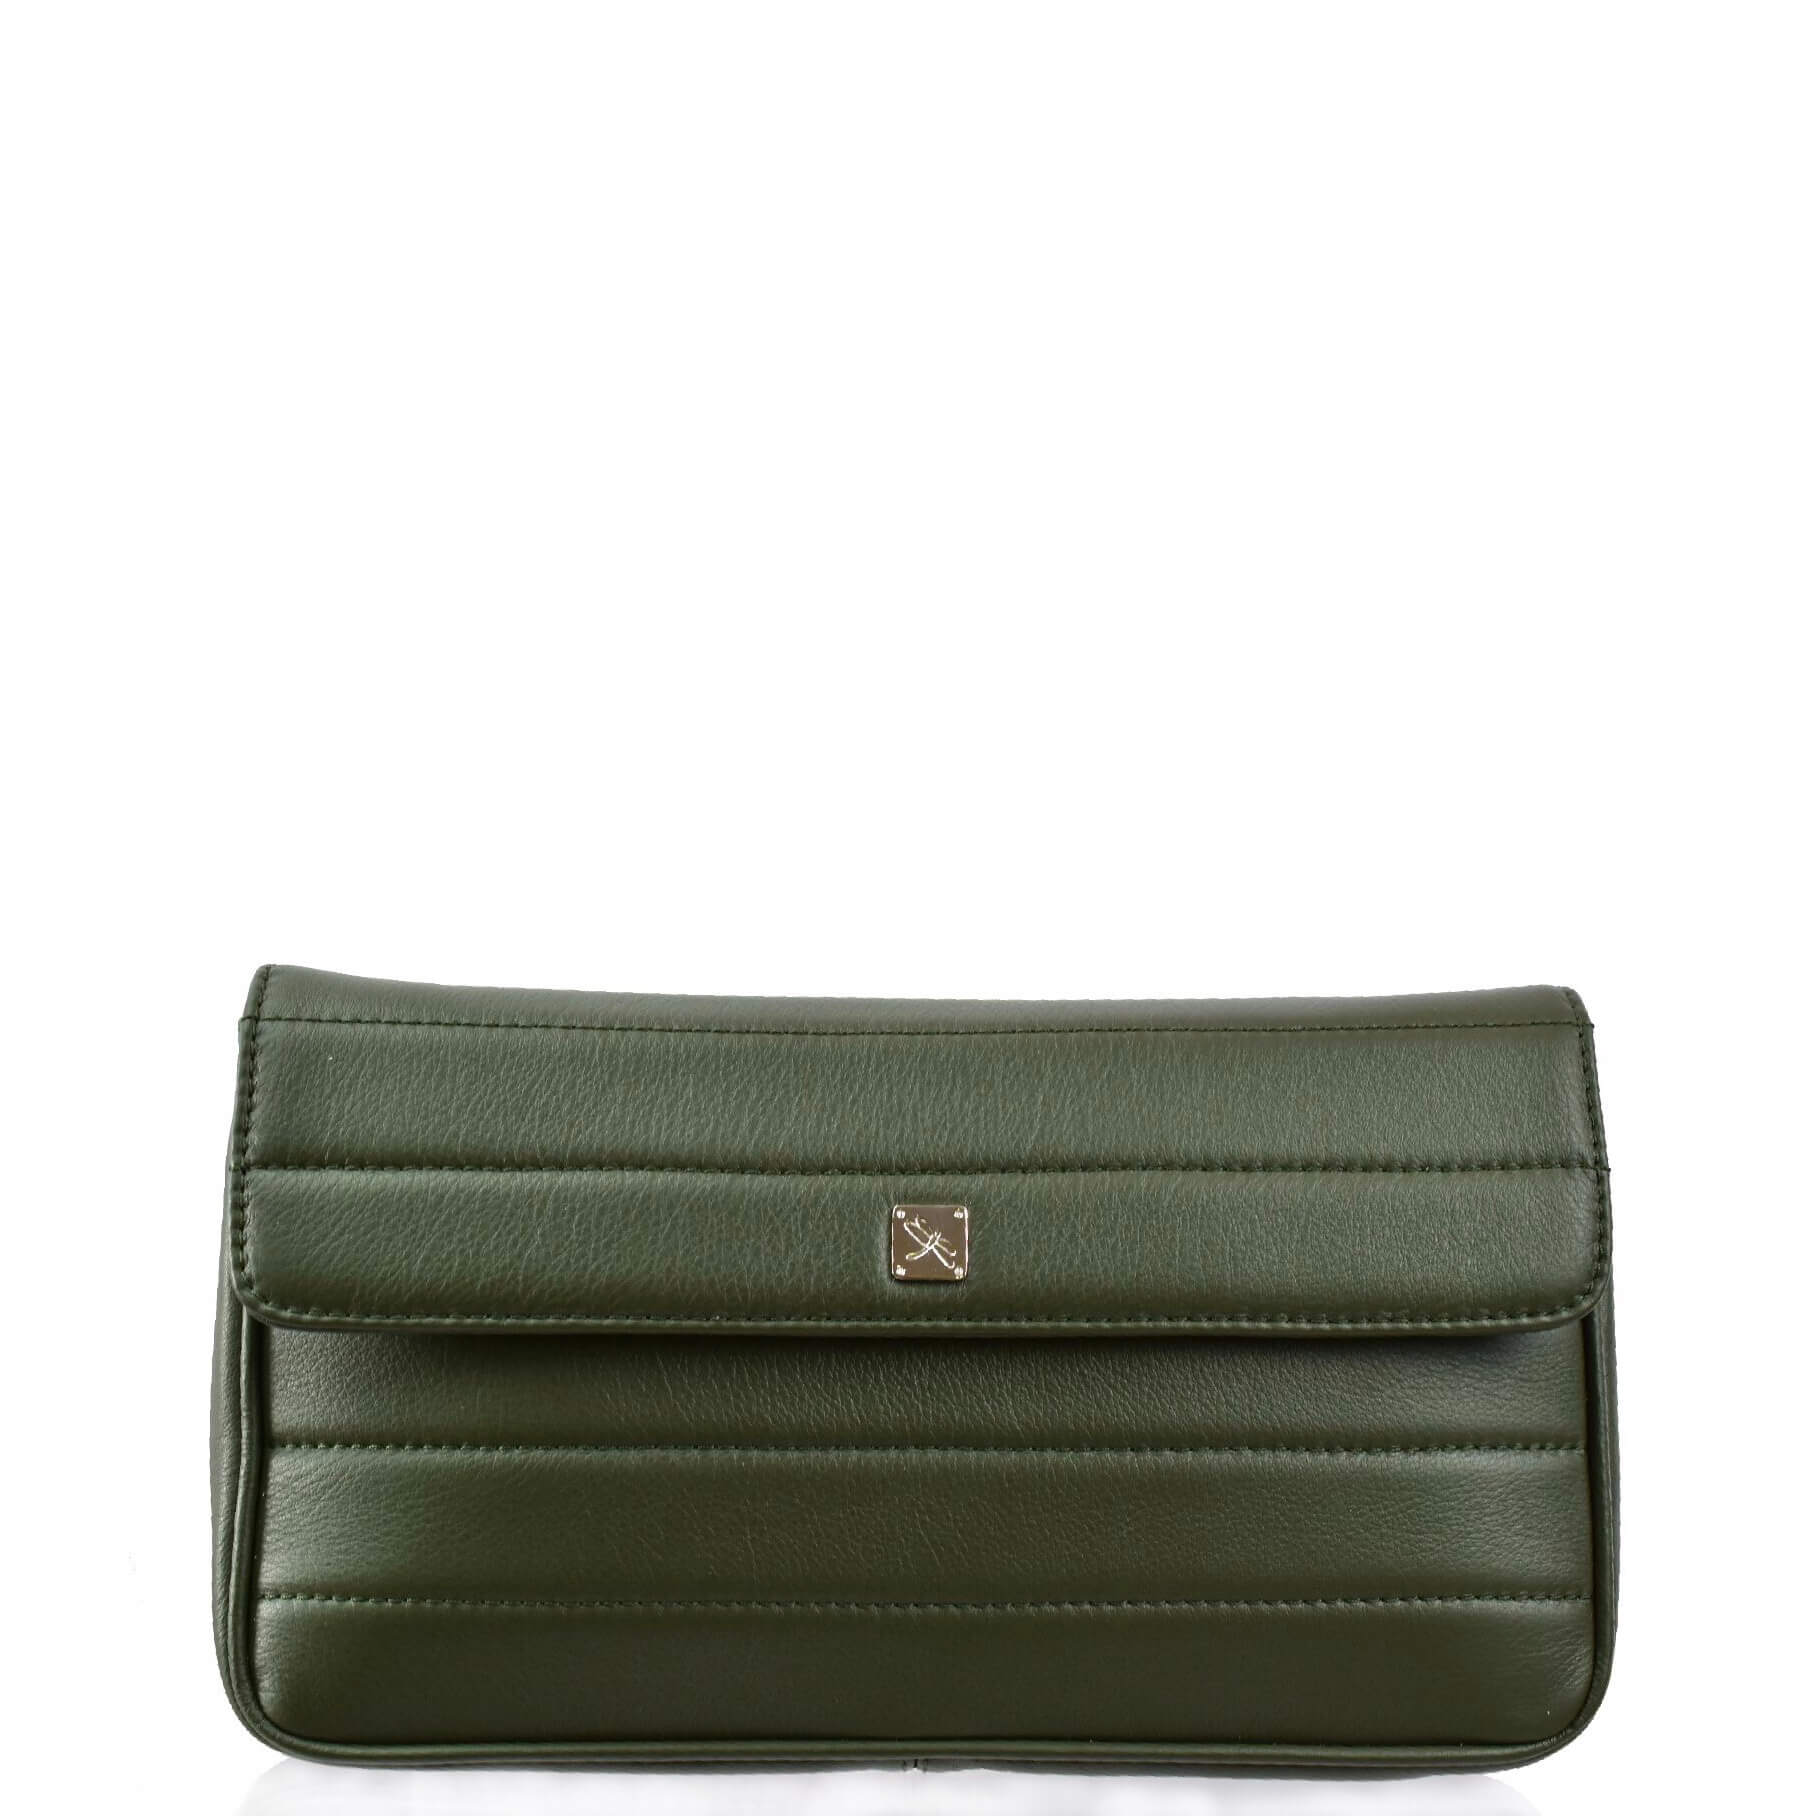 Green Crossbody with Chain. Viena L